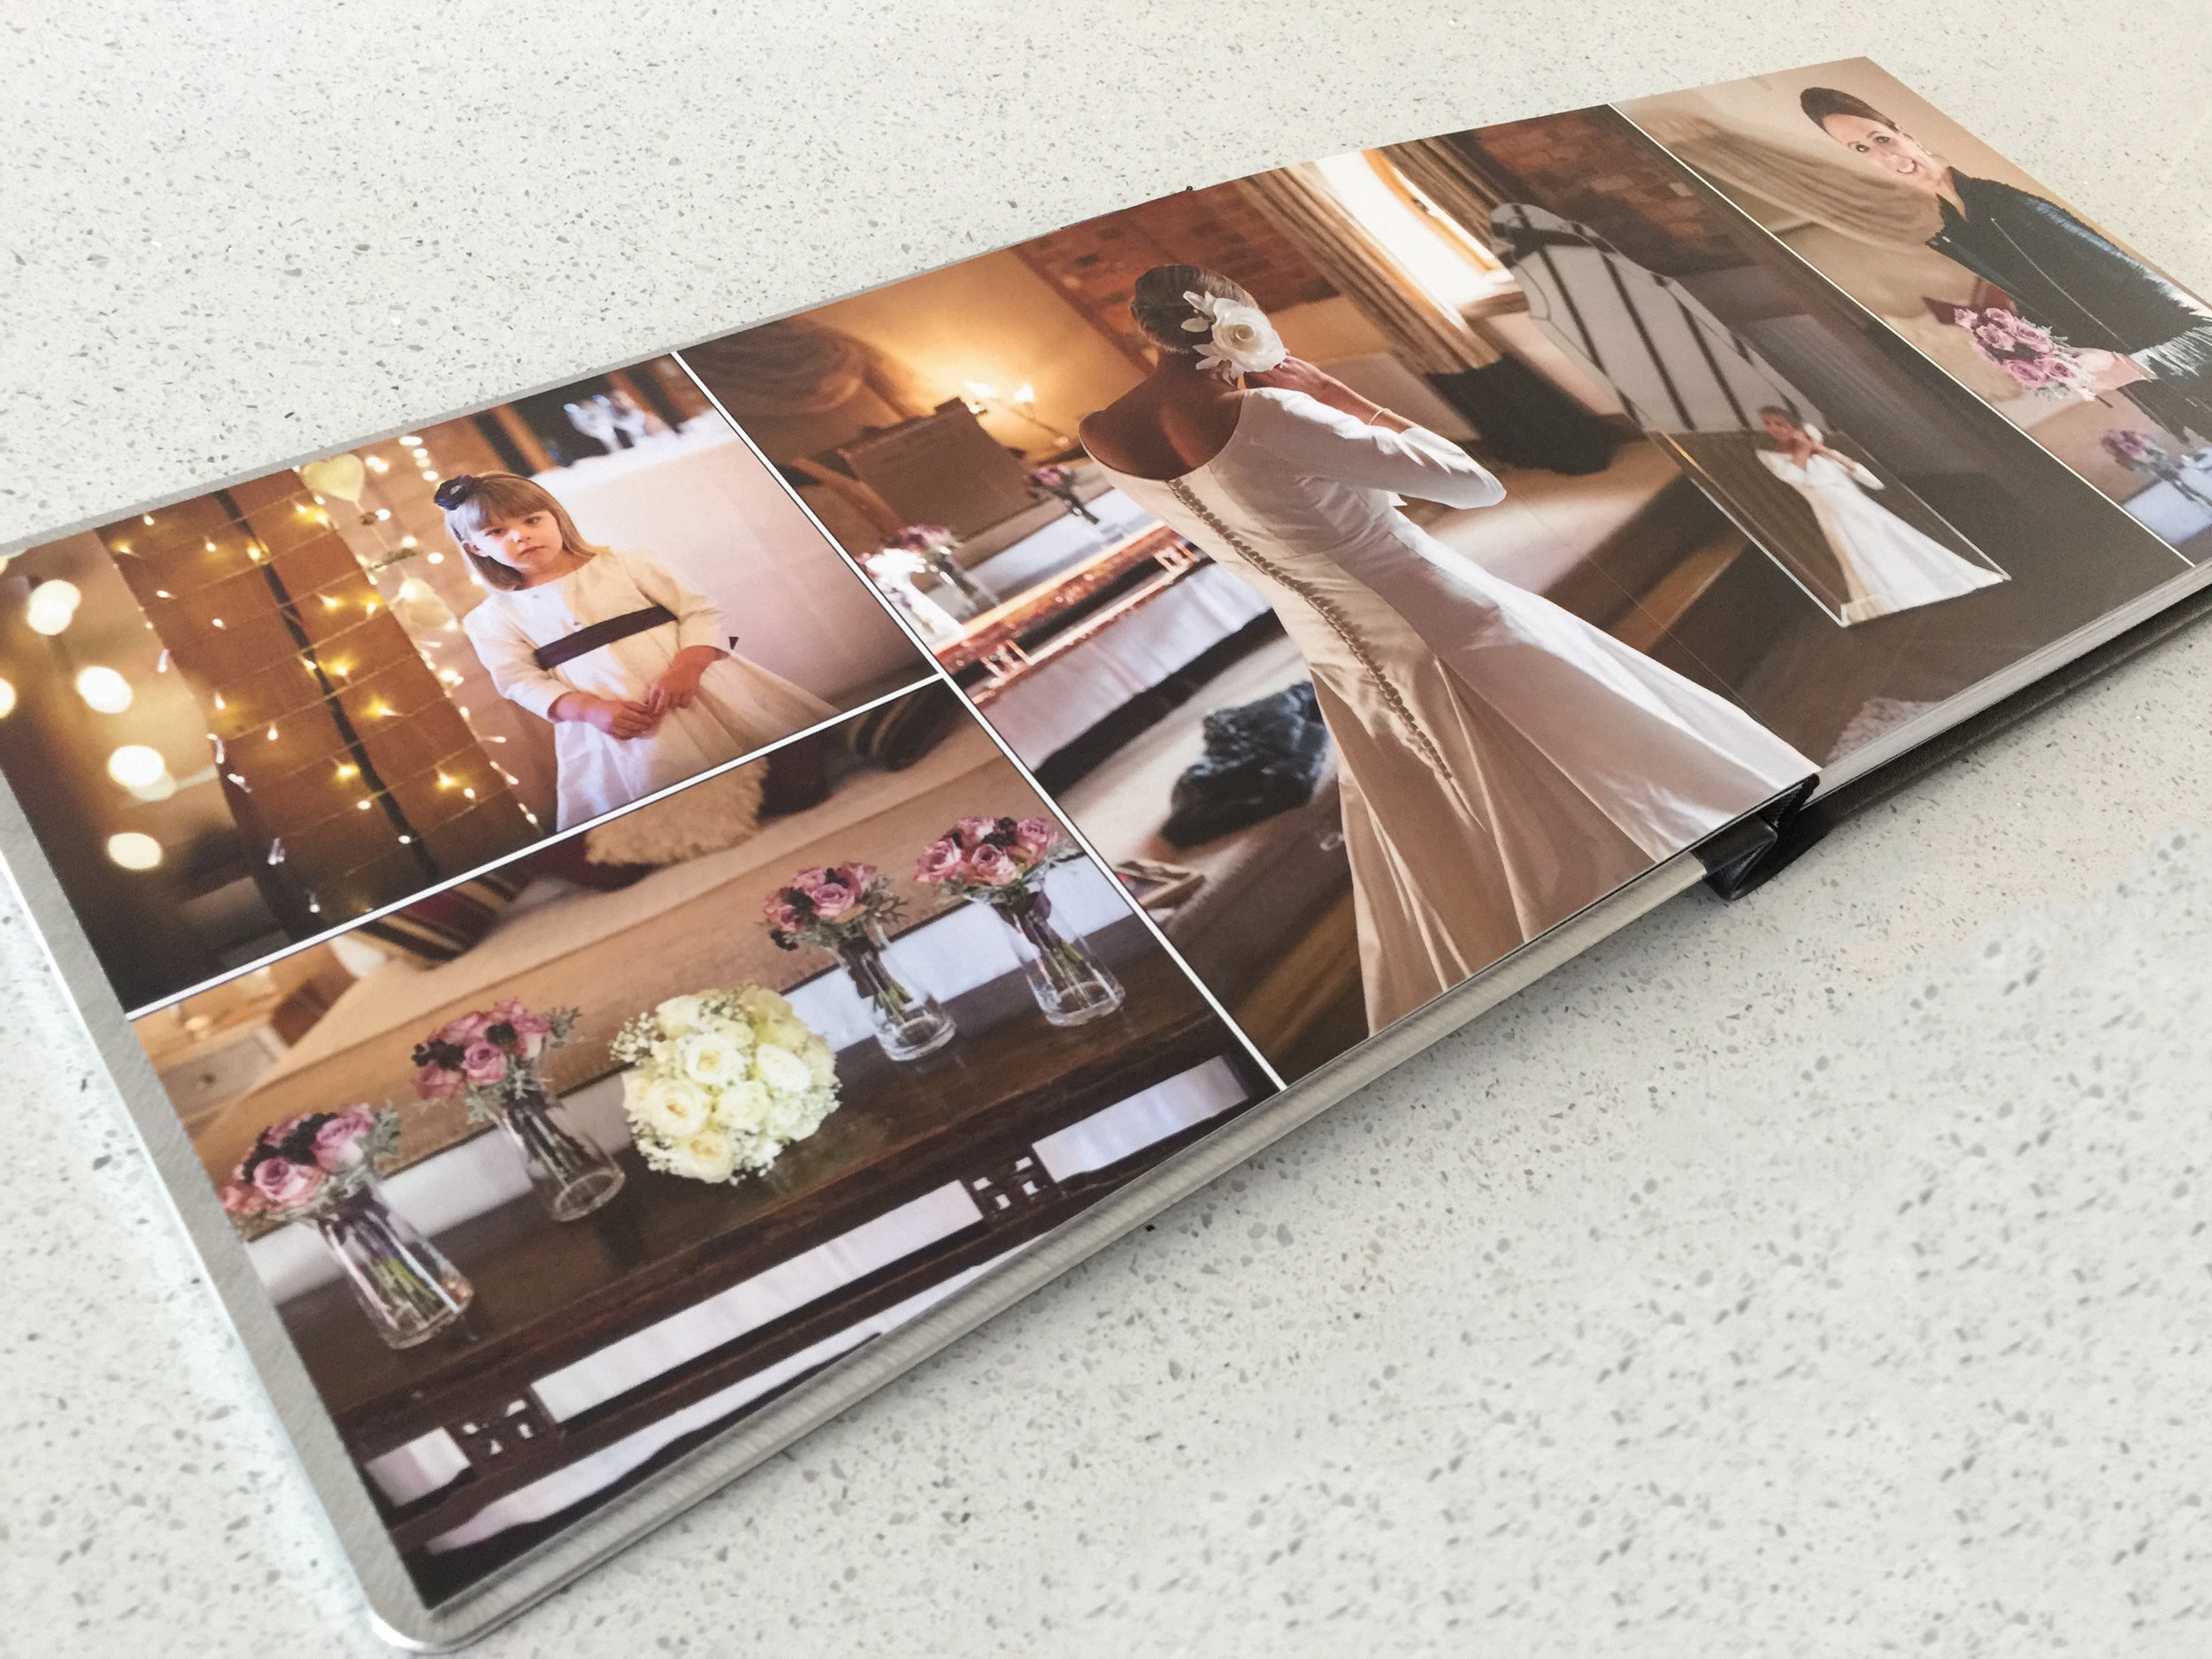 Your chosen images can flow seamlessly across the page in a natural spread style